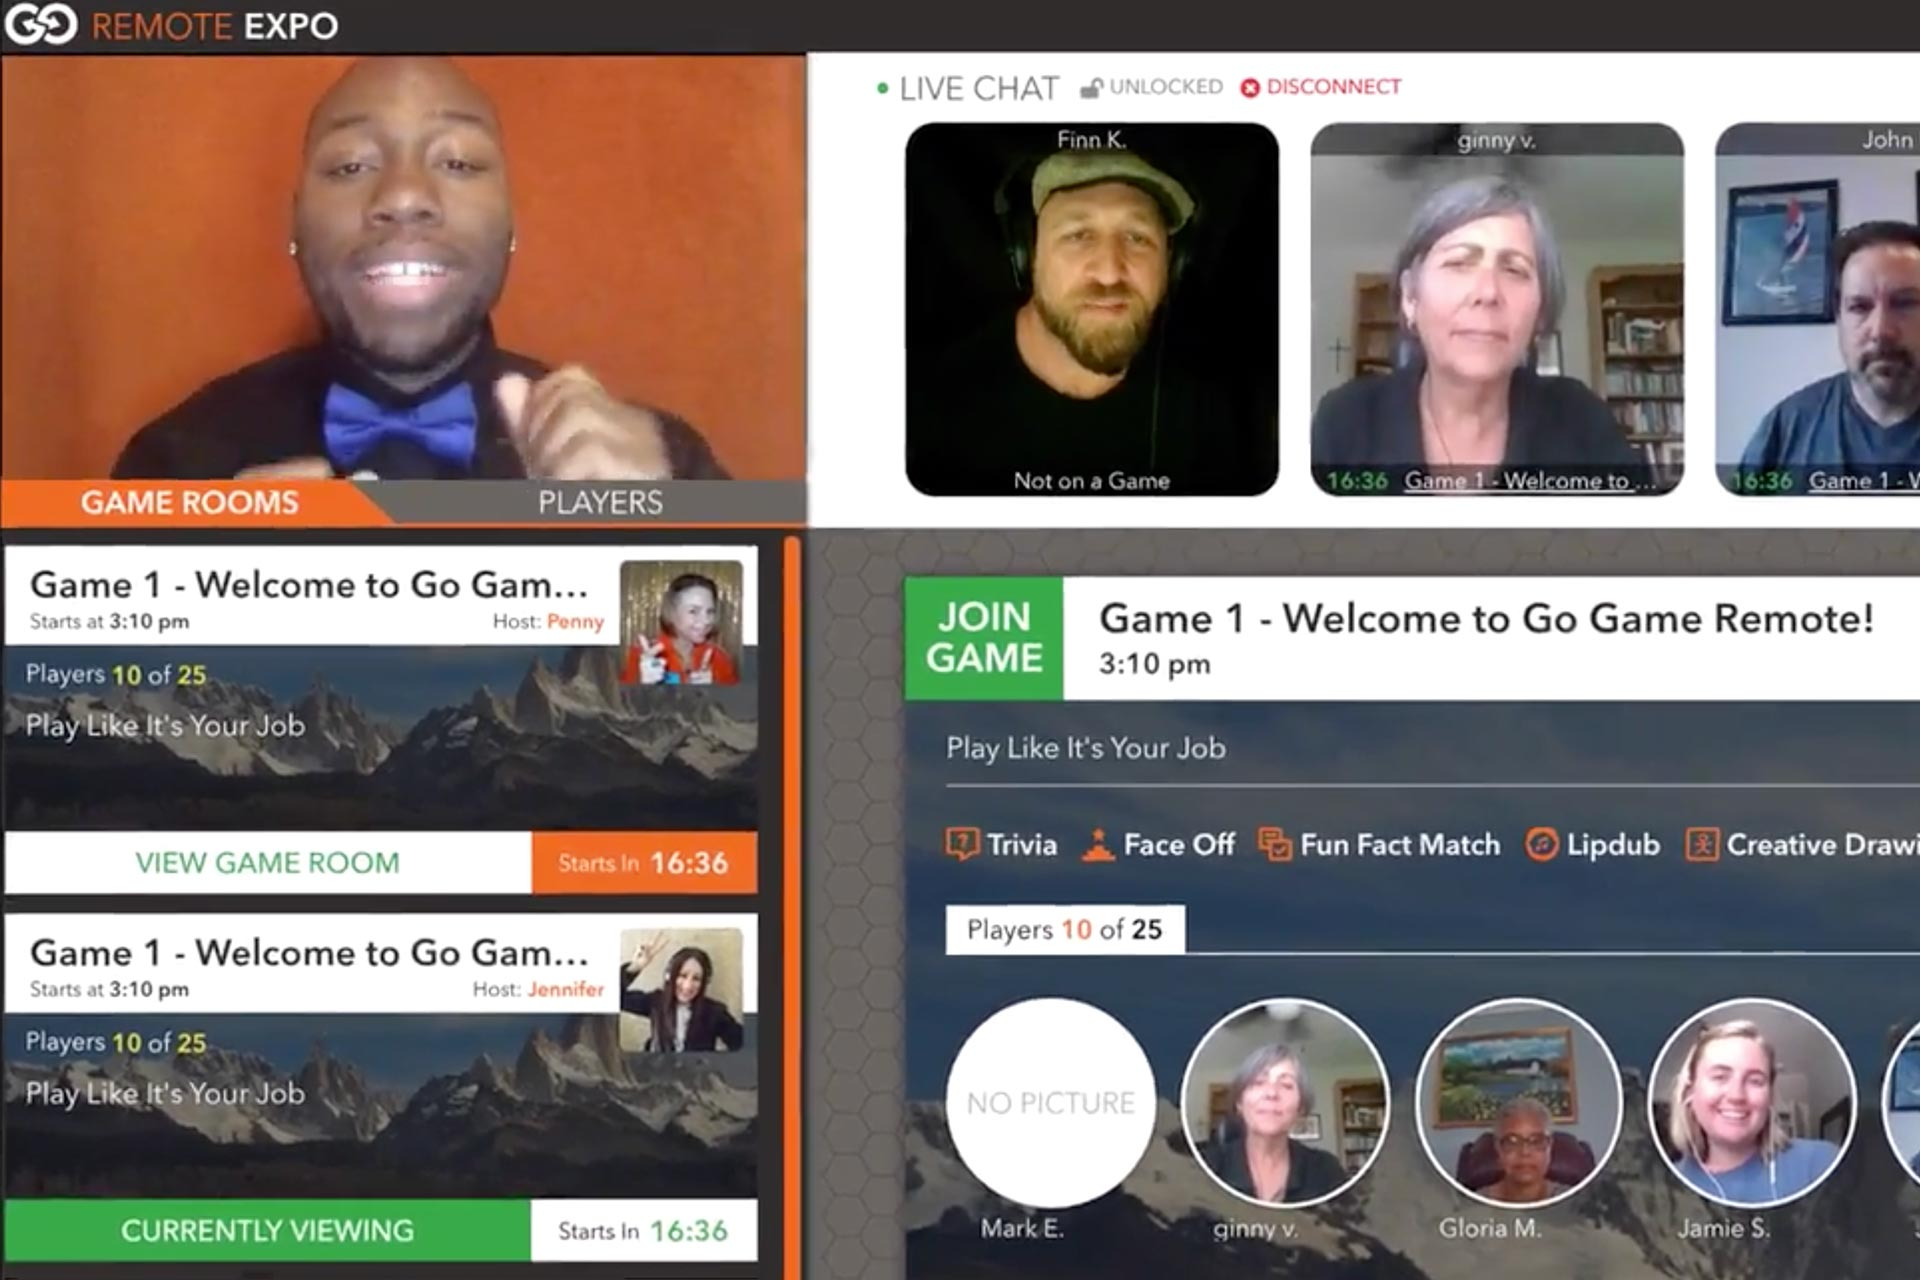 Screenshot of multiple users engaging in an online community